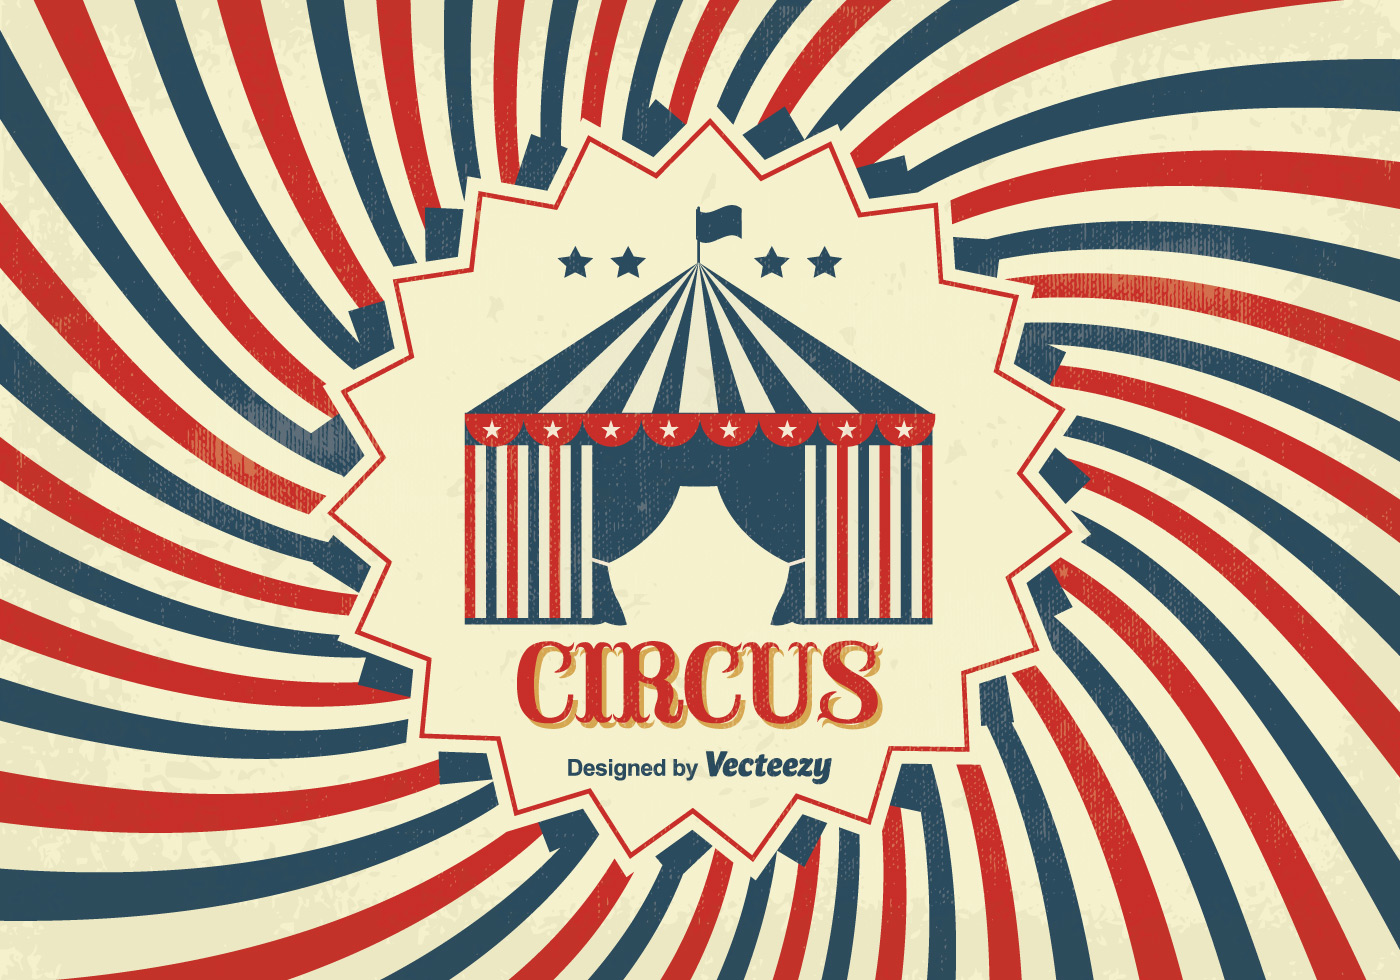 Vintage circus poster download free vector art stock for Circus posters free